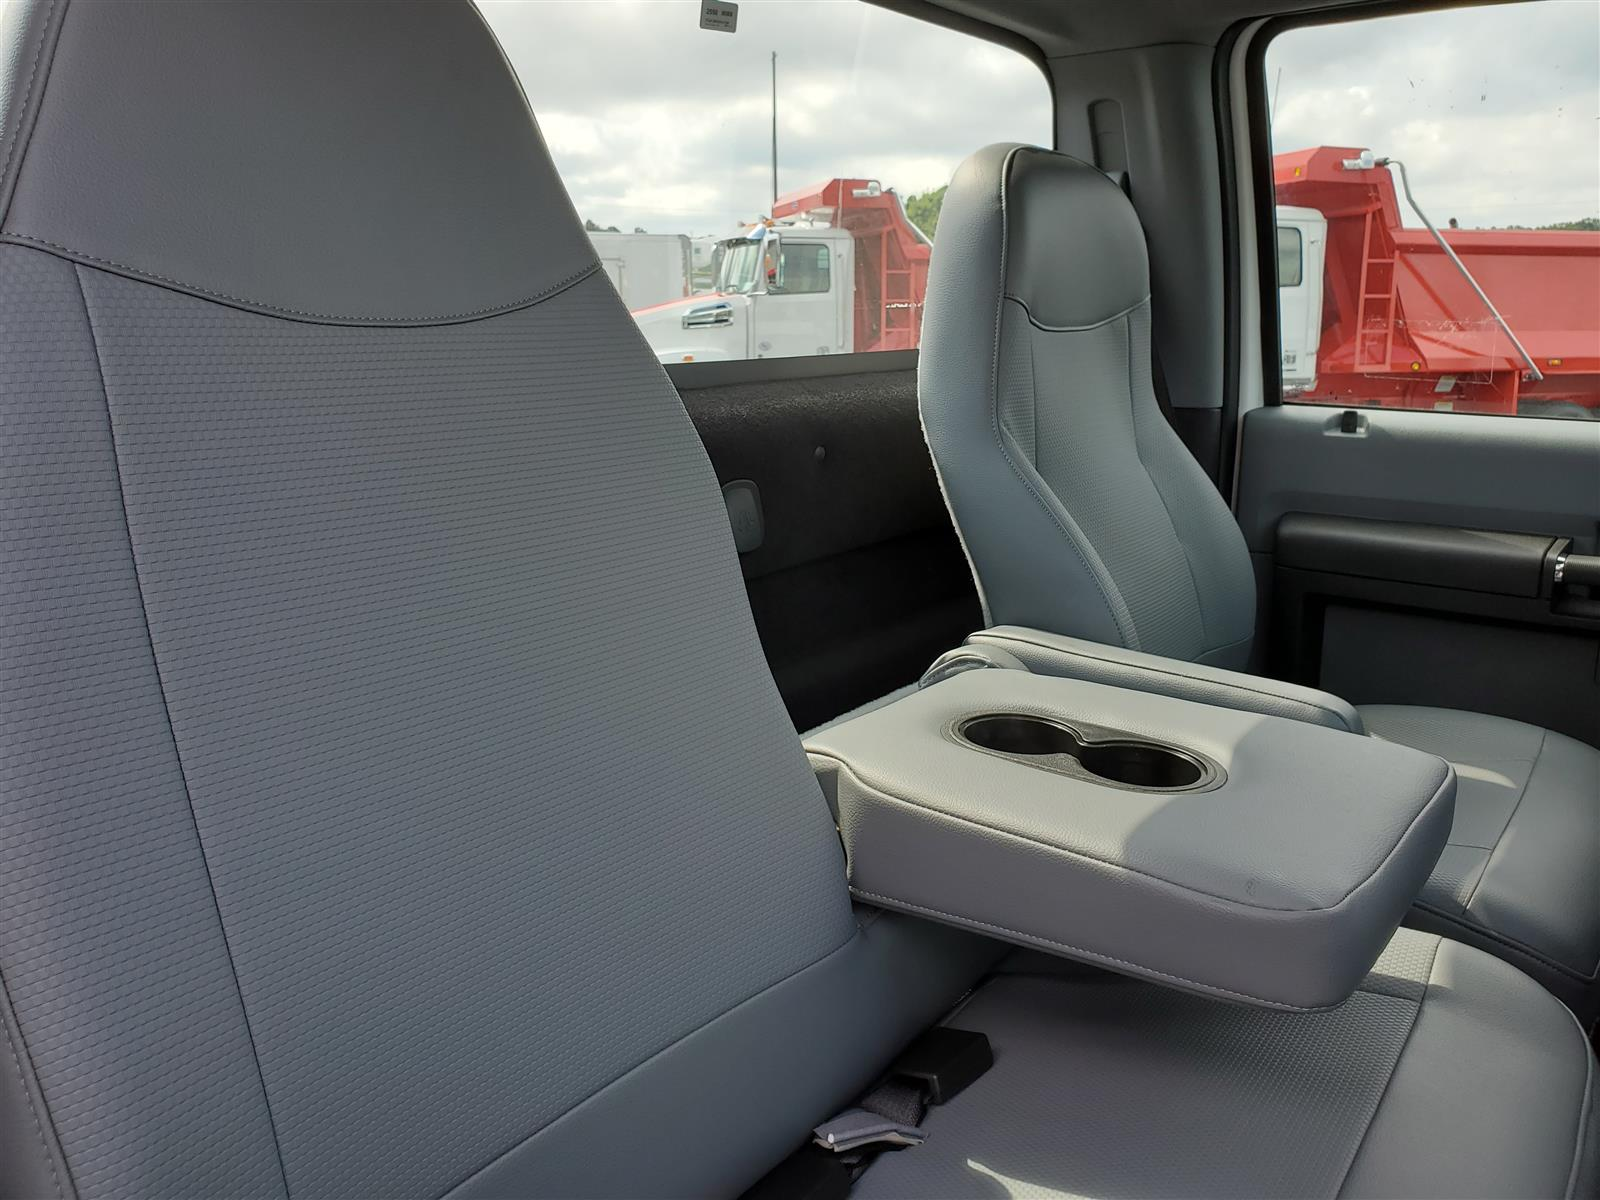 2021 Ford F-750 Regular Cab DRW 4x2, Cab Chassis #MDF02563 - photo 10